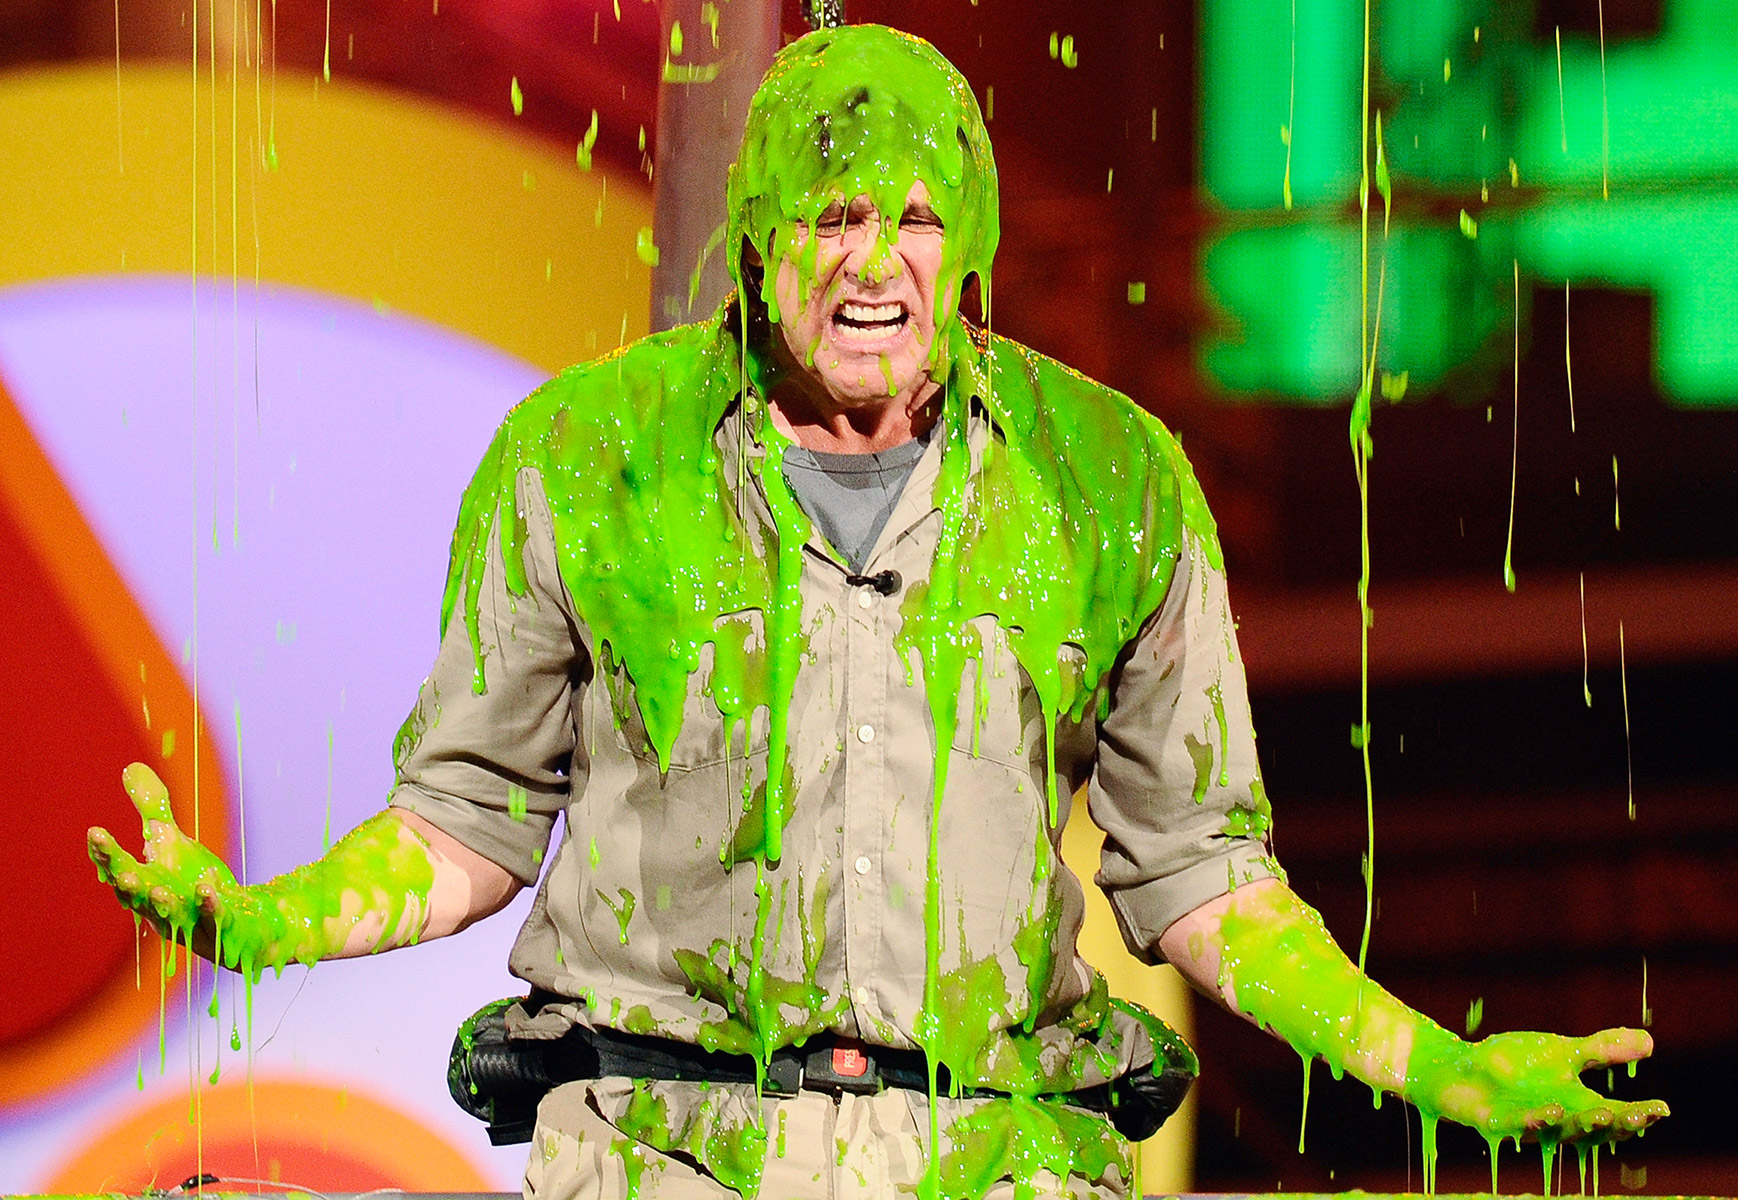 "The Mr. Popper's Penguins actor got drenched when a hot air balloon loaded with slime capsized above his head at the Galen Center in L.A. on Apr. 2, 2011. ""I hear that I won the award for favorite actor of all time in the universe, so I jumped in my balloon just to avoid the L.A. traffic,"" Carrey joked just before things got messy."